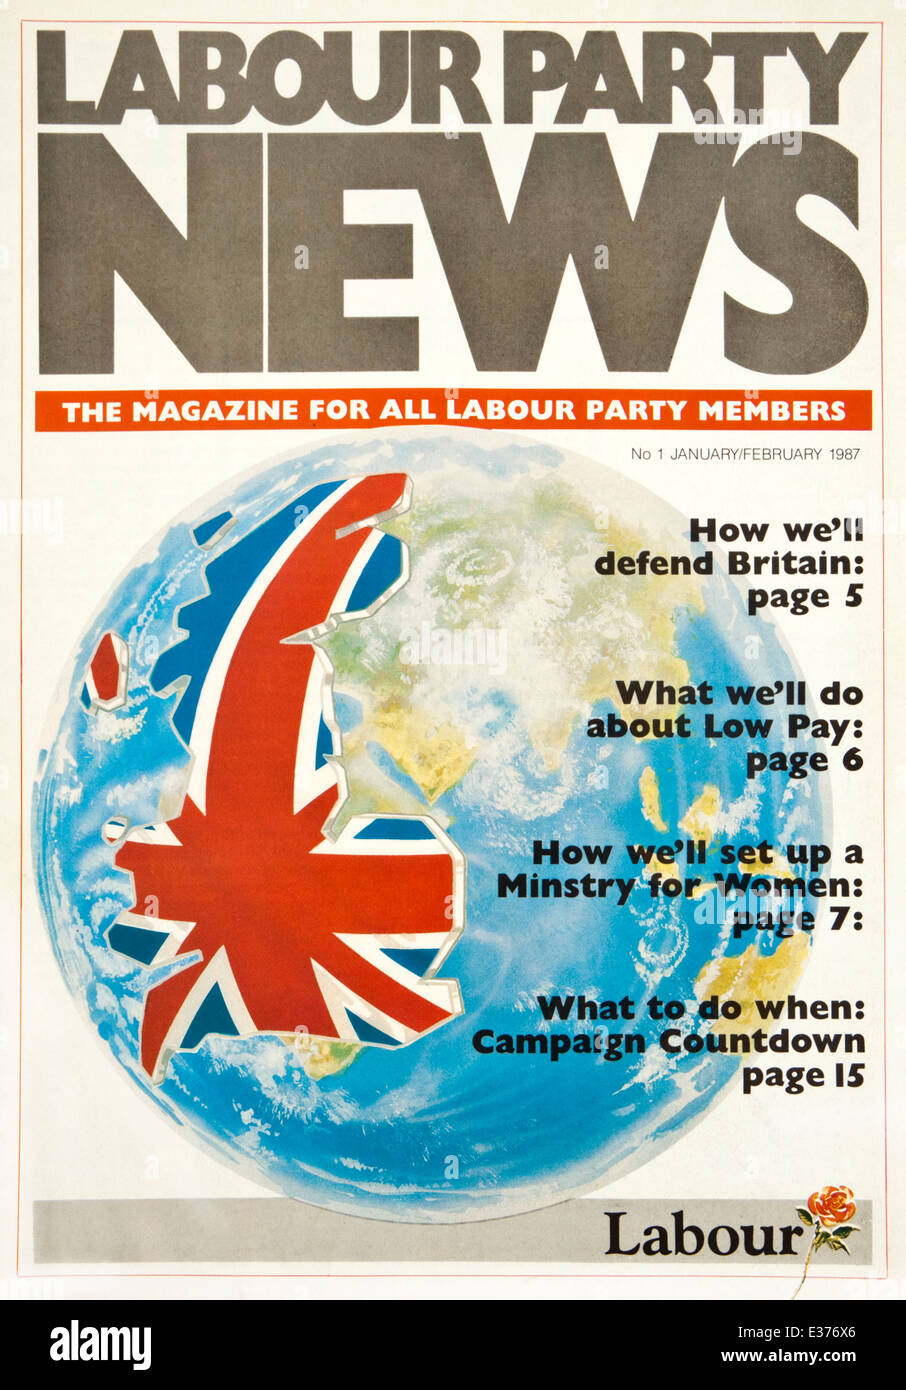 First issue of 'Labour Party News', the magazine for all Labour Party Members (January 1987) - Stock Image